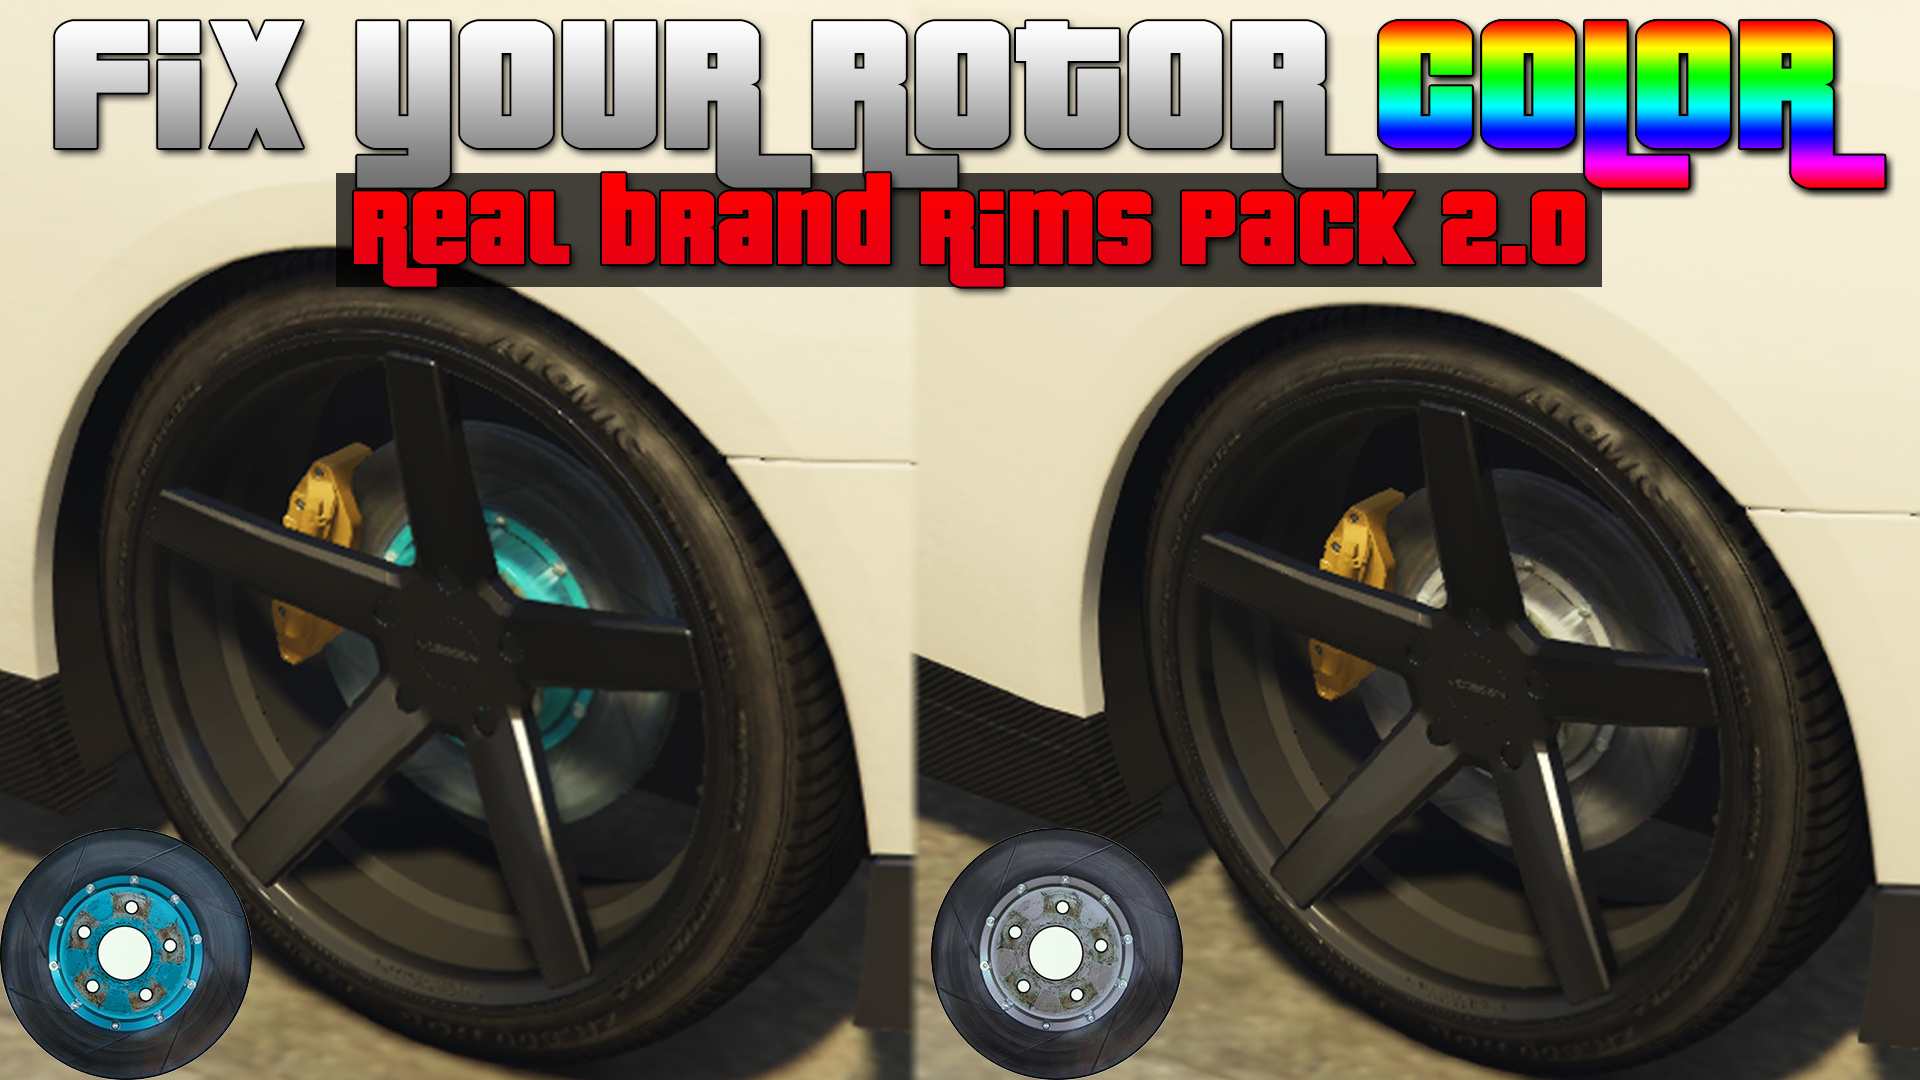 Blue Rotor Color Fix For Real Brand Rims Pack